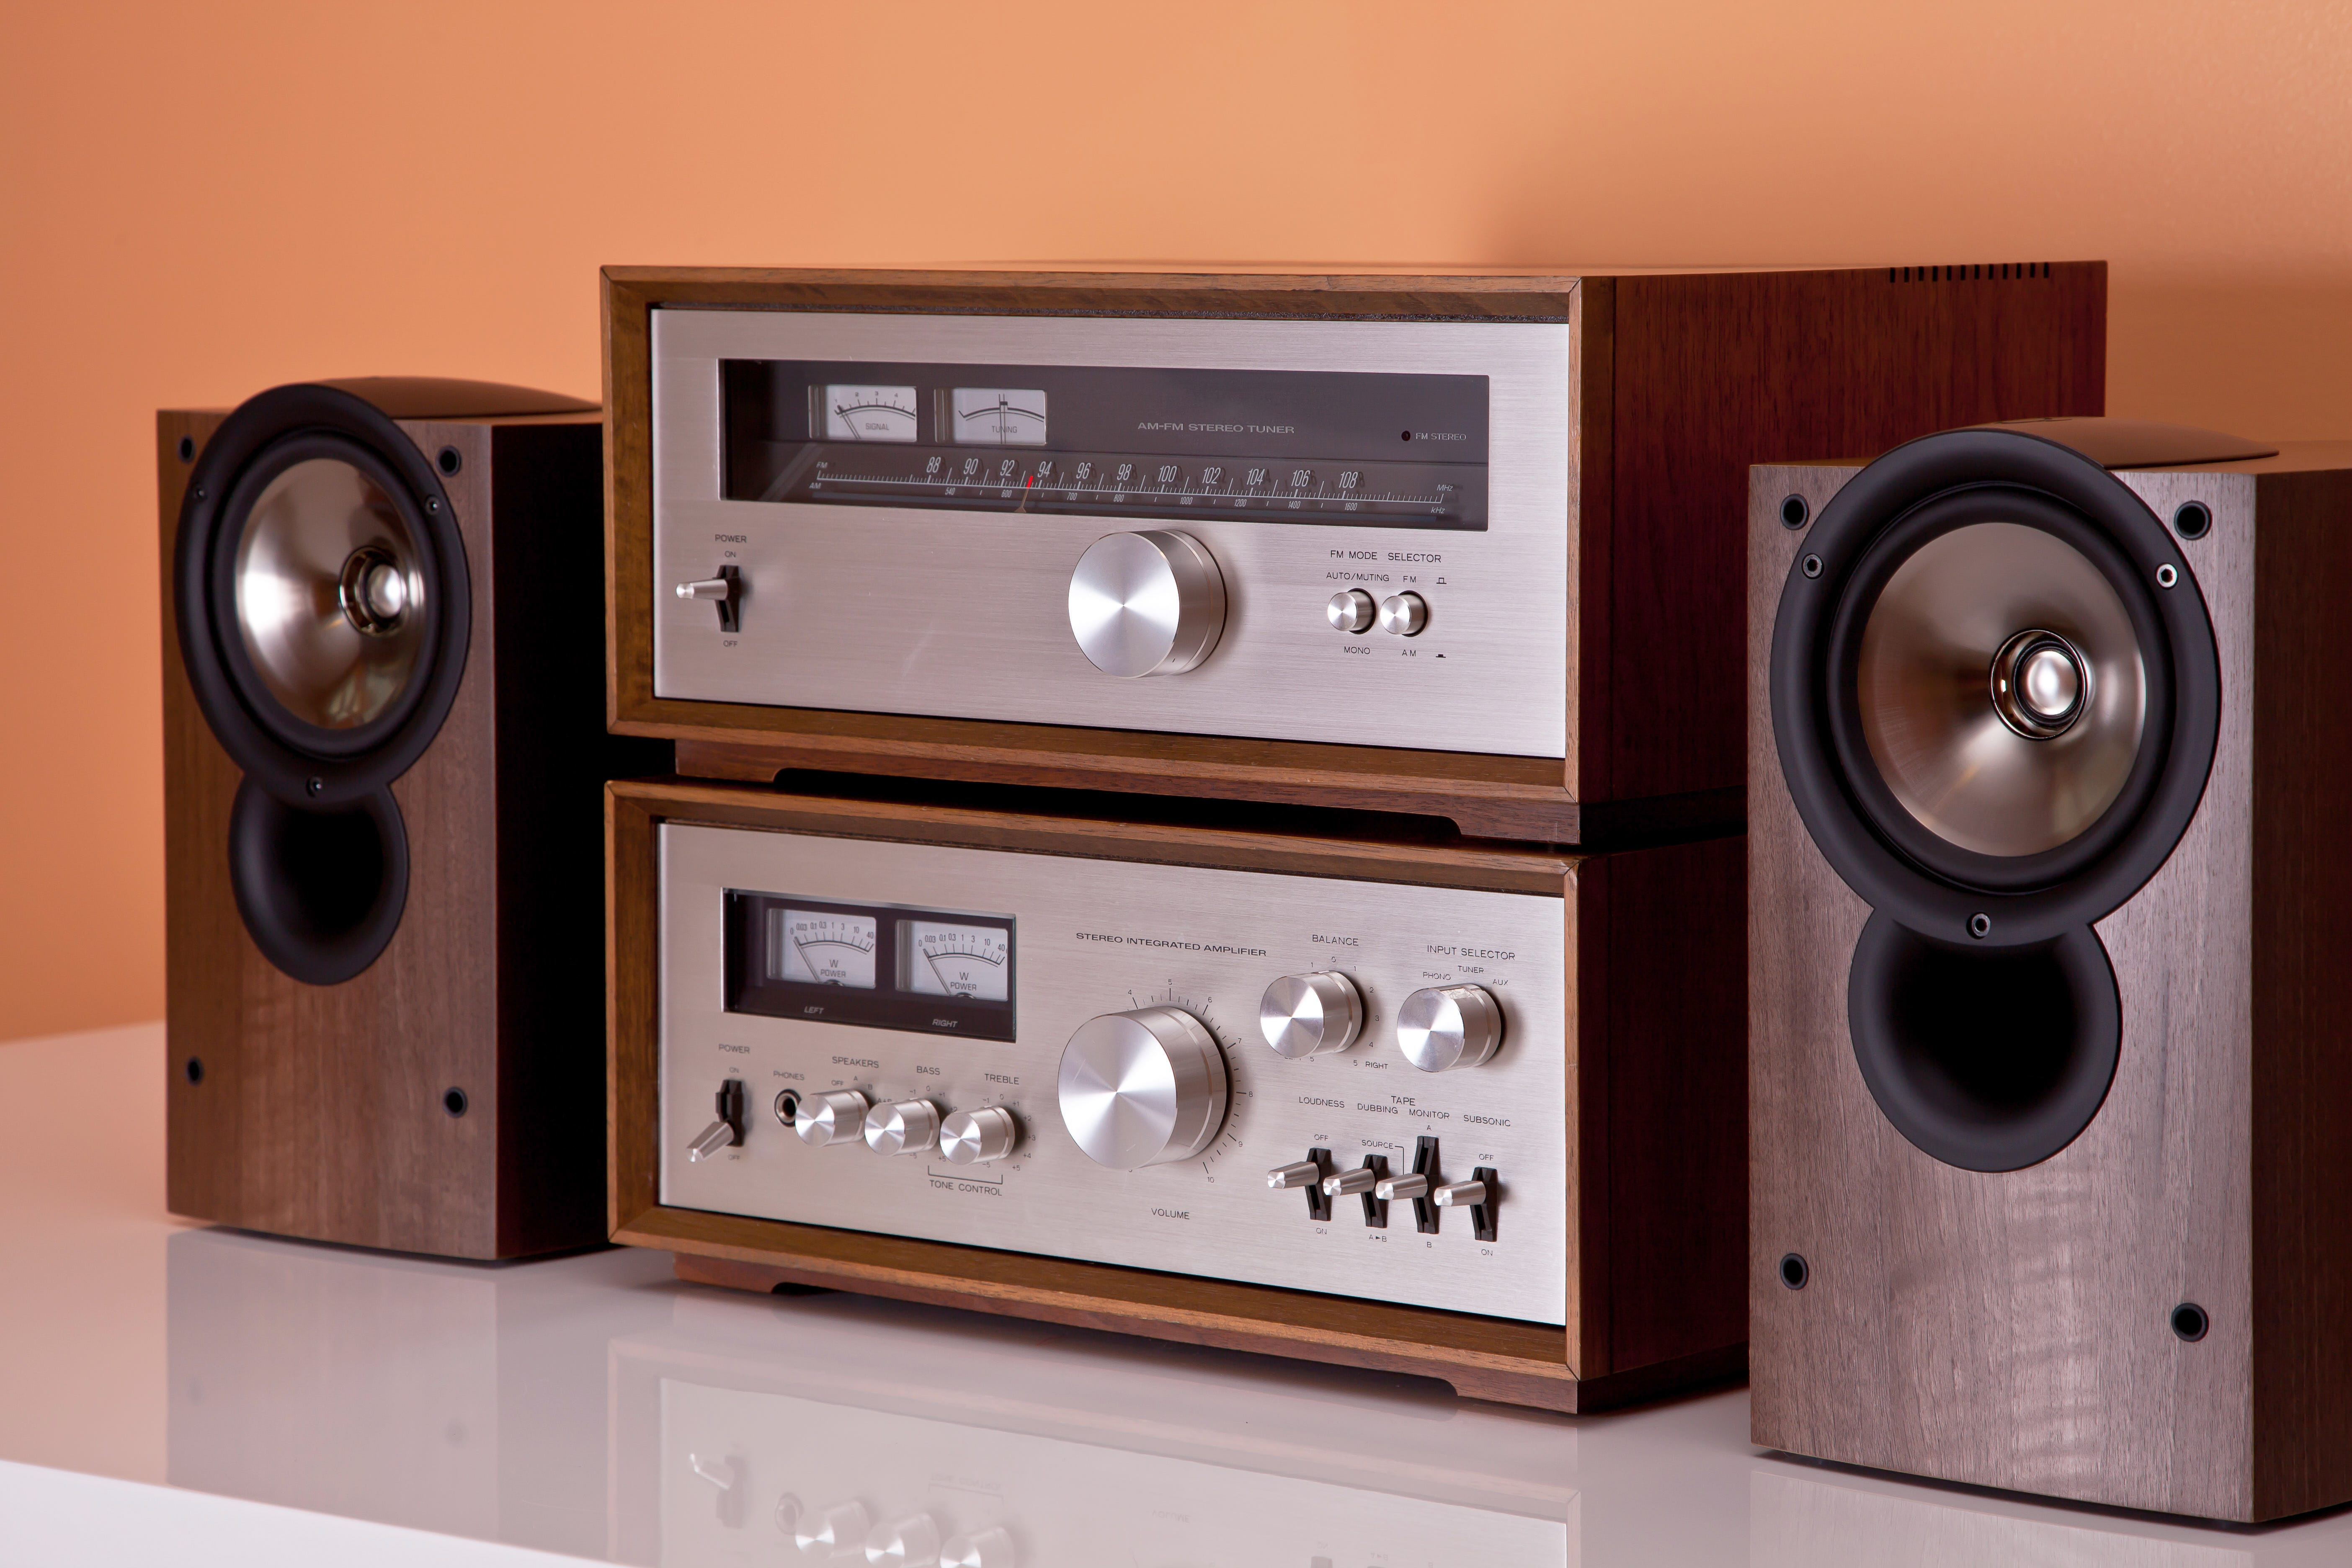 Choosing an Amp for Your Speakers